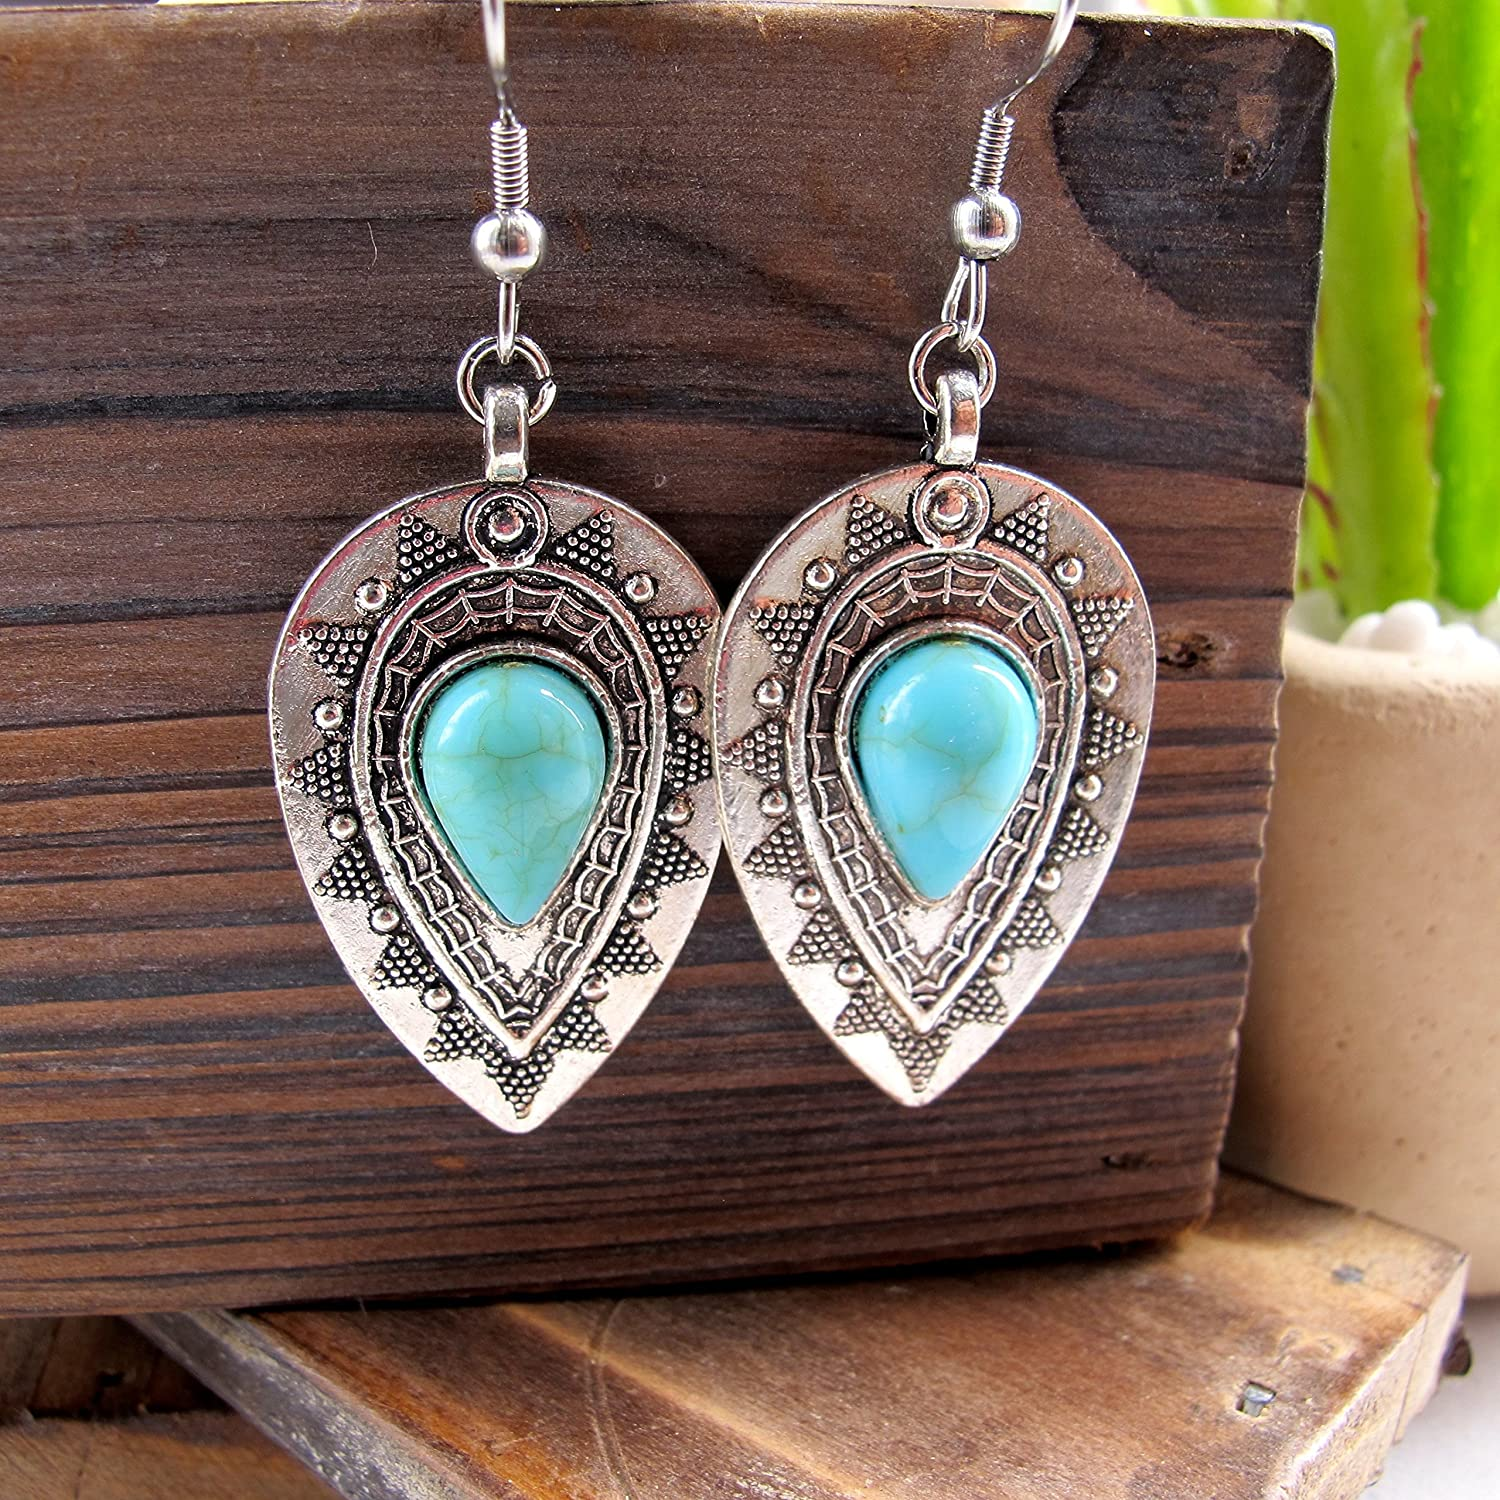 Boho Turquoise and Silver Dangle Earrings Stainless Steel Earring Hooks